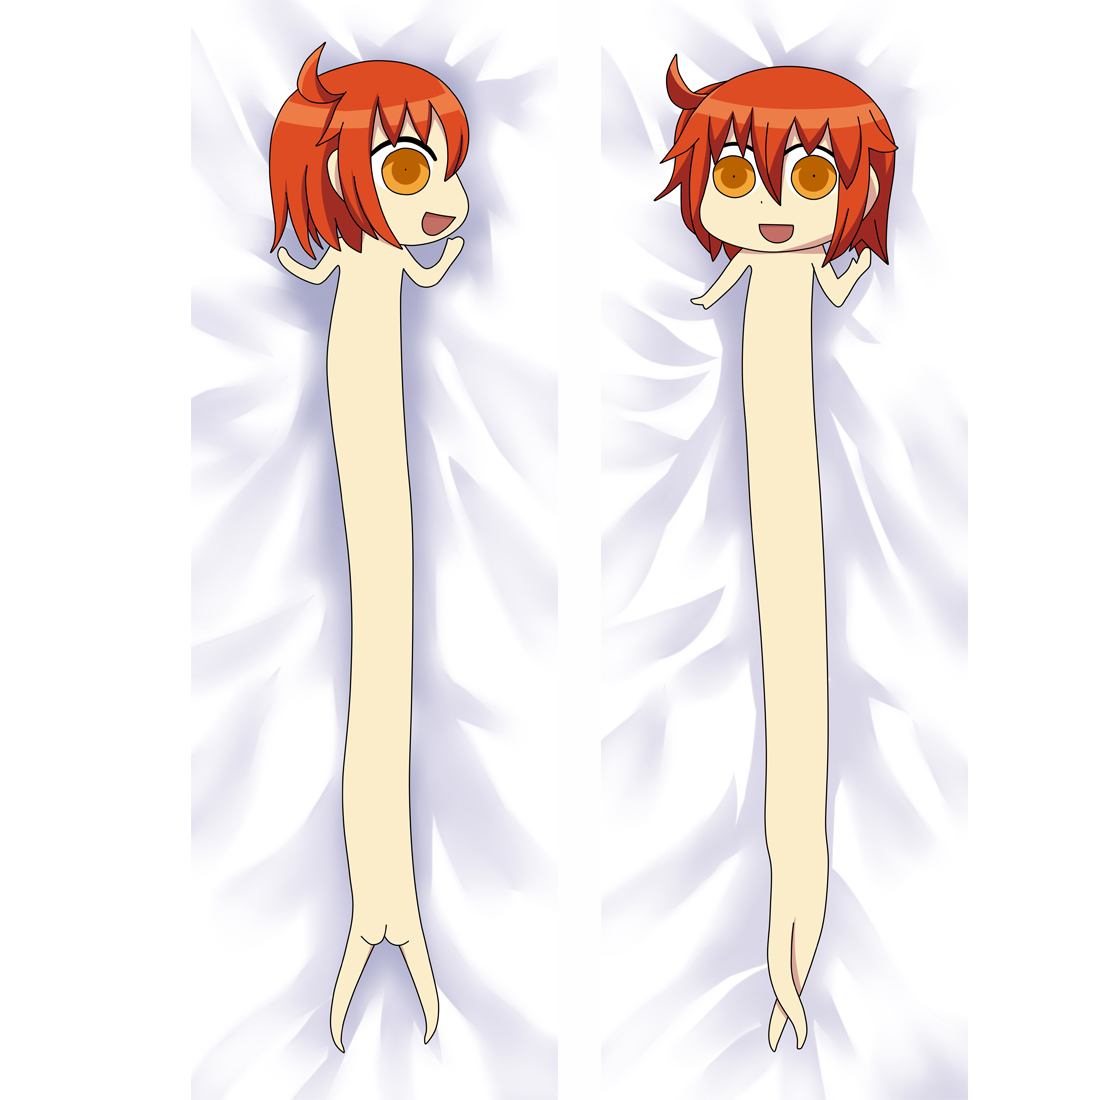 Mxdfafa Japan Anime Himouto! Umaru-chan Dakimakura Cover Hugging Body Pillow Cases Otaku Pillowcase Decorative Pillowcases